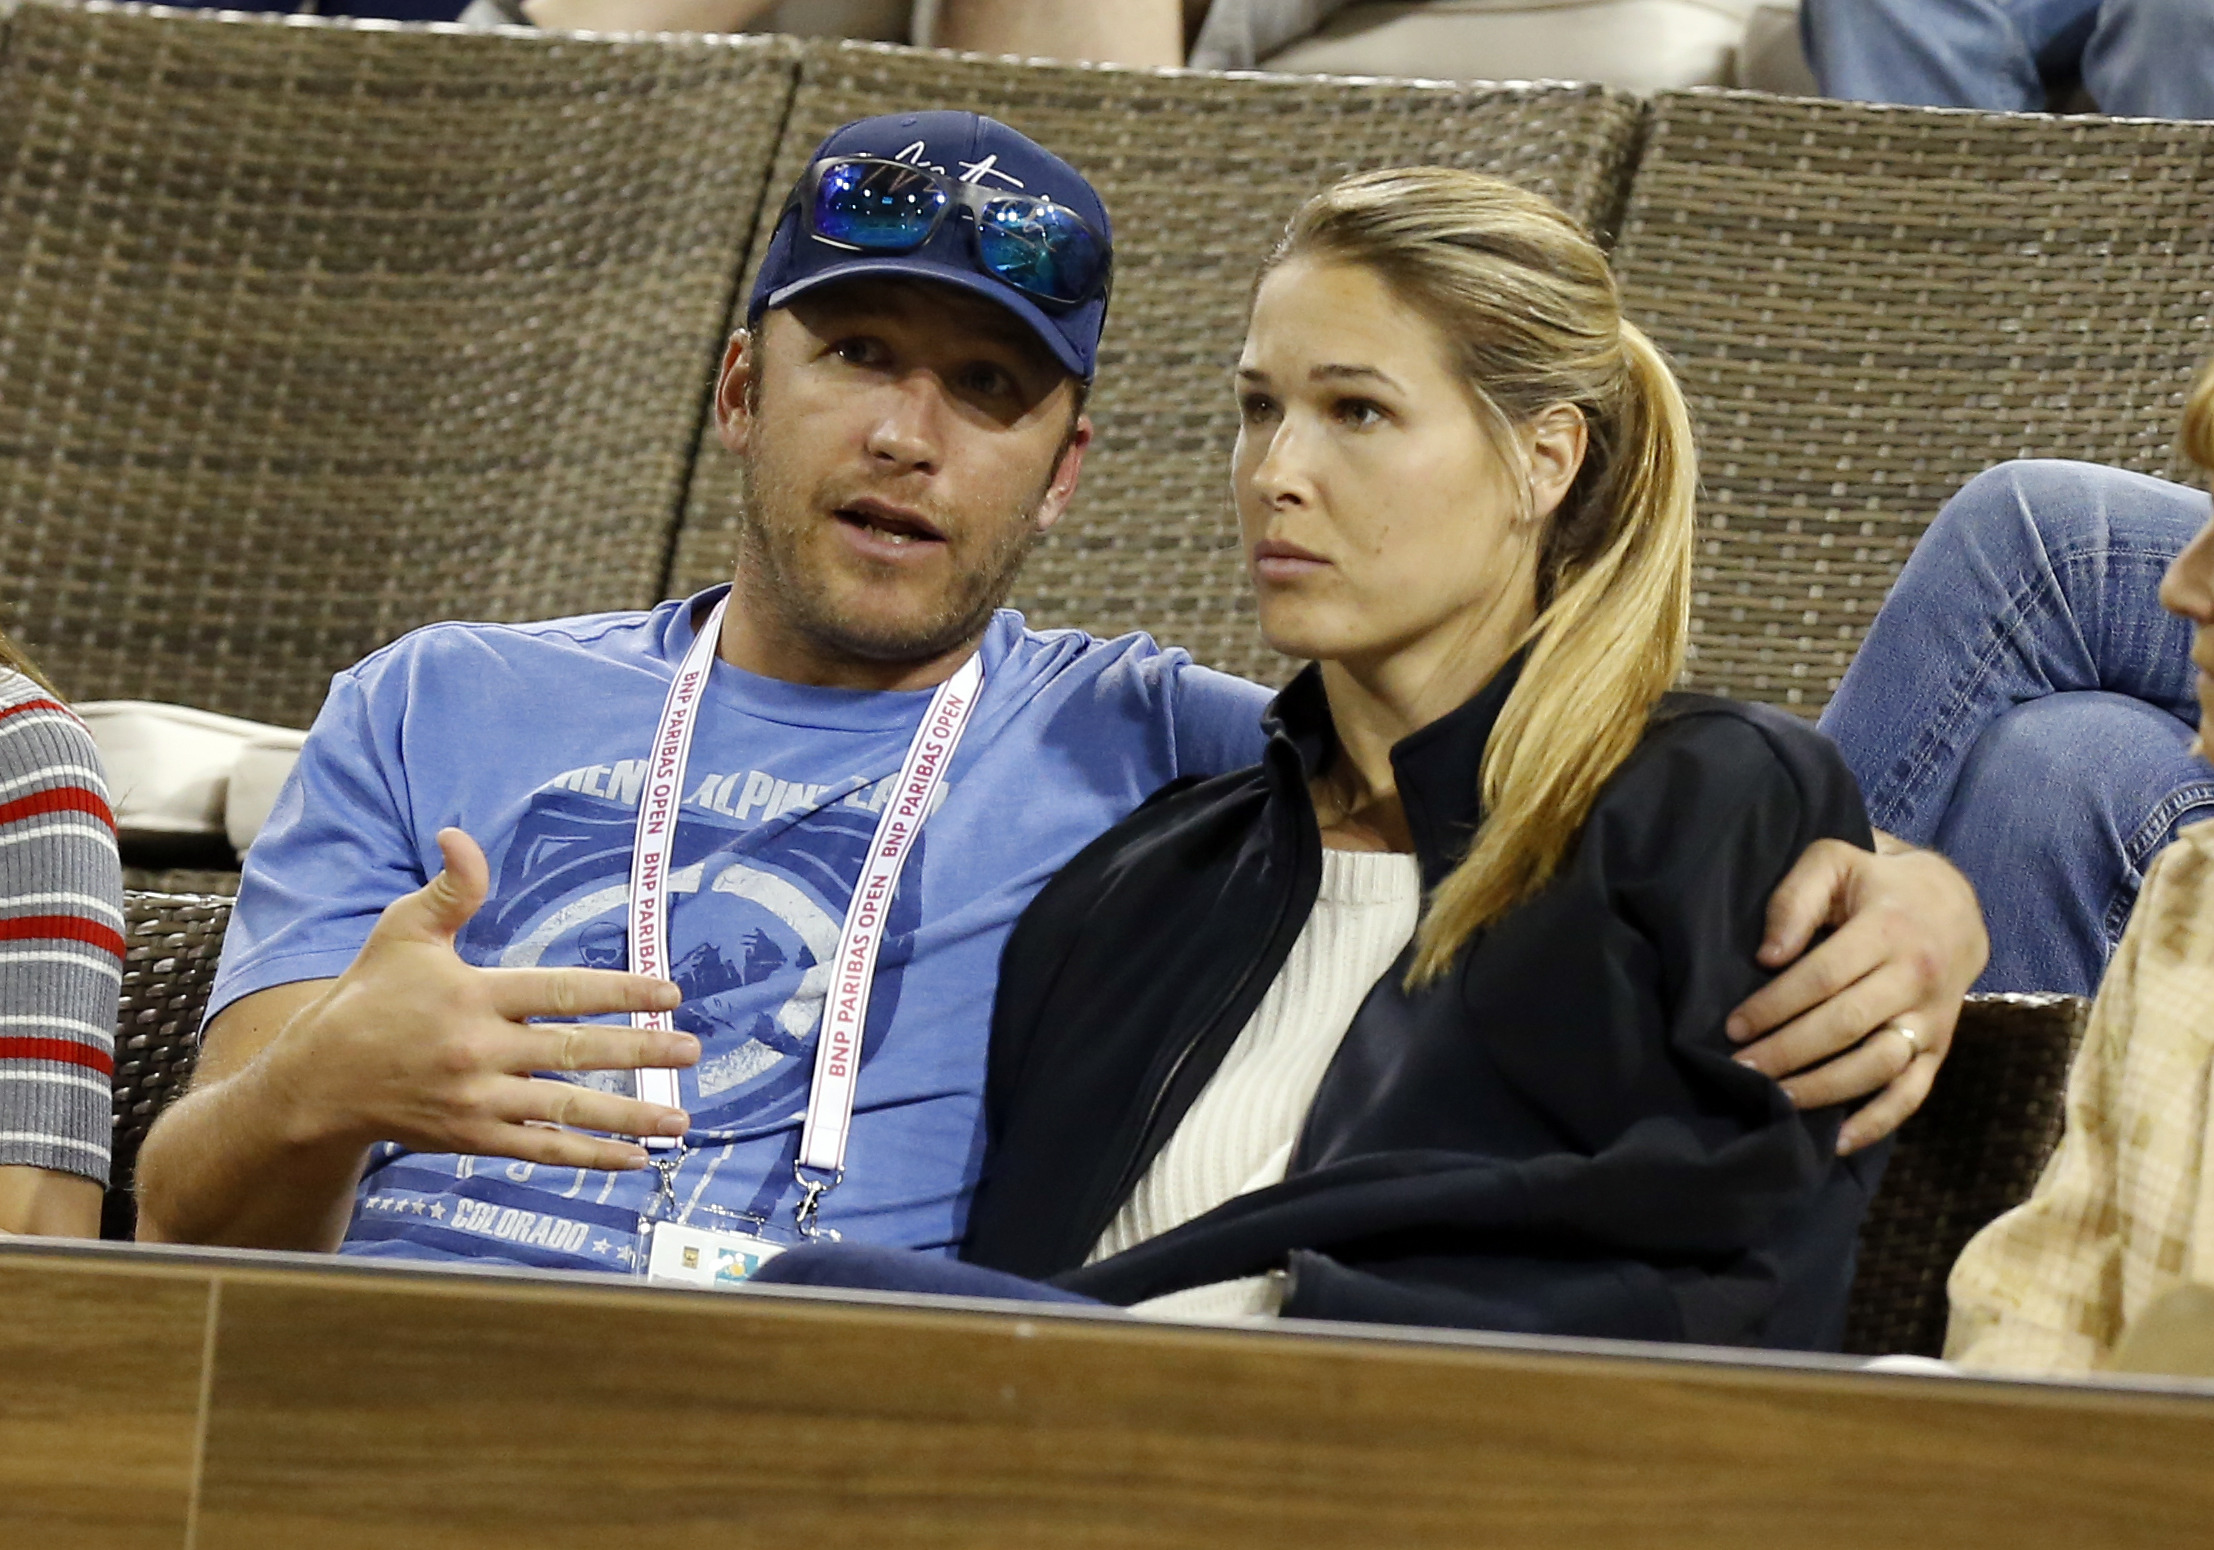 Alpine skier  Bode Miller and Morgan Beck views a second round match between Roger Federer and Federico Debonis at the BNP Paribas Open on March 10, 2018, at the Indian Wells Tennis Gardens in Indian Wells, CA.